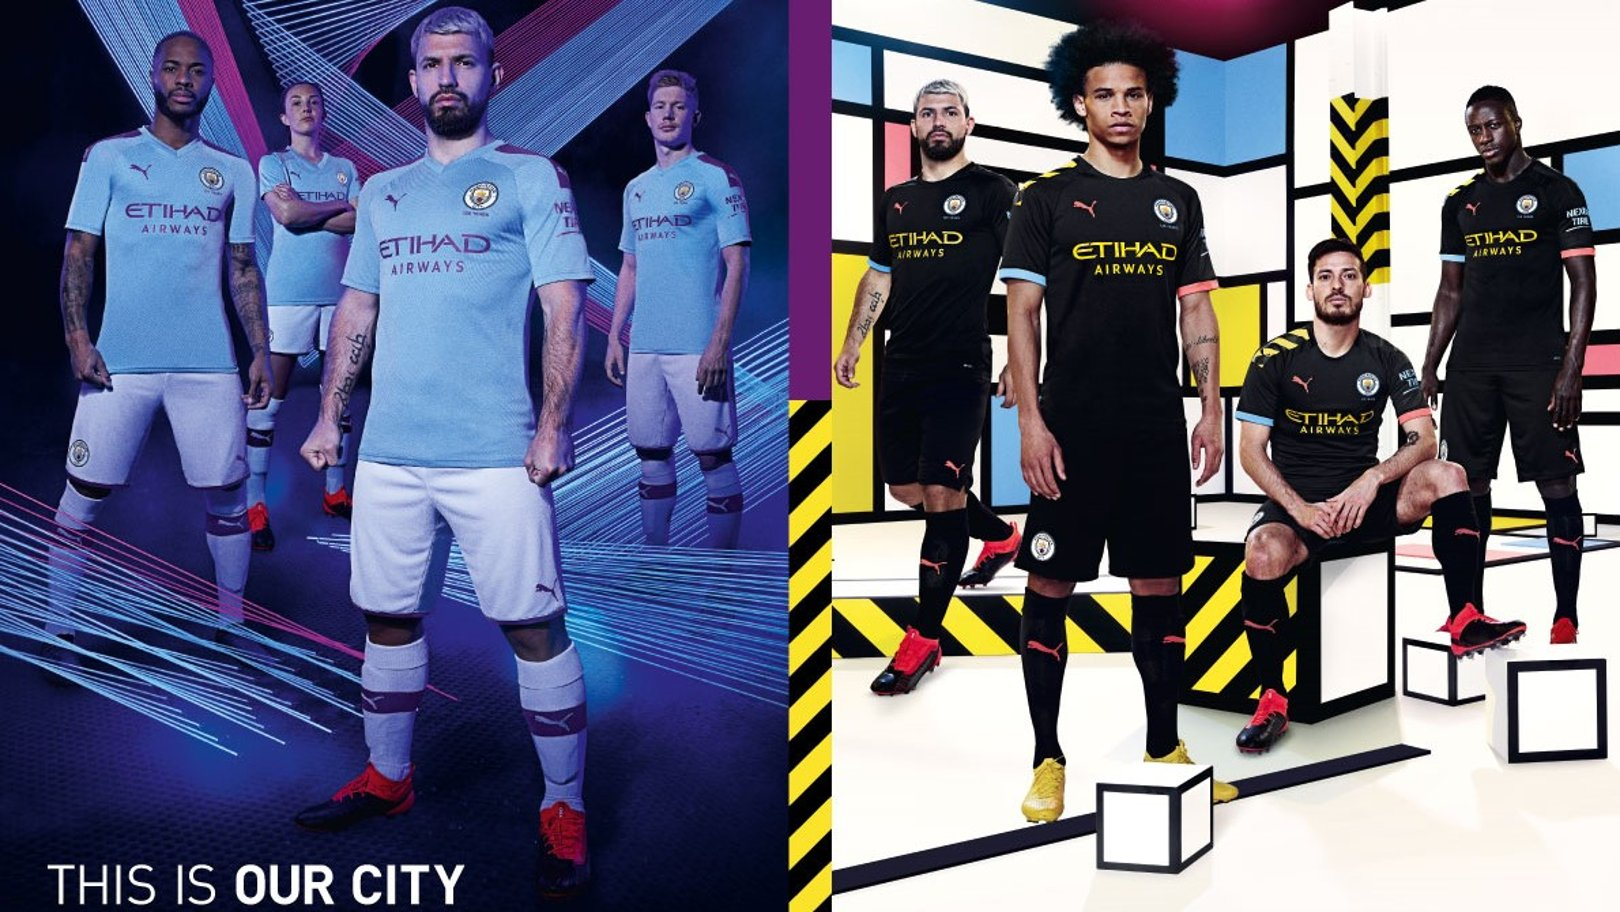 CITY x PUMA: Manchester City and PUMA today revealed their 2019/20 Home and Away kits, the first designs of their partnership, which pay tribute to Manchester's industrial and cultural heritage.